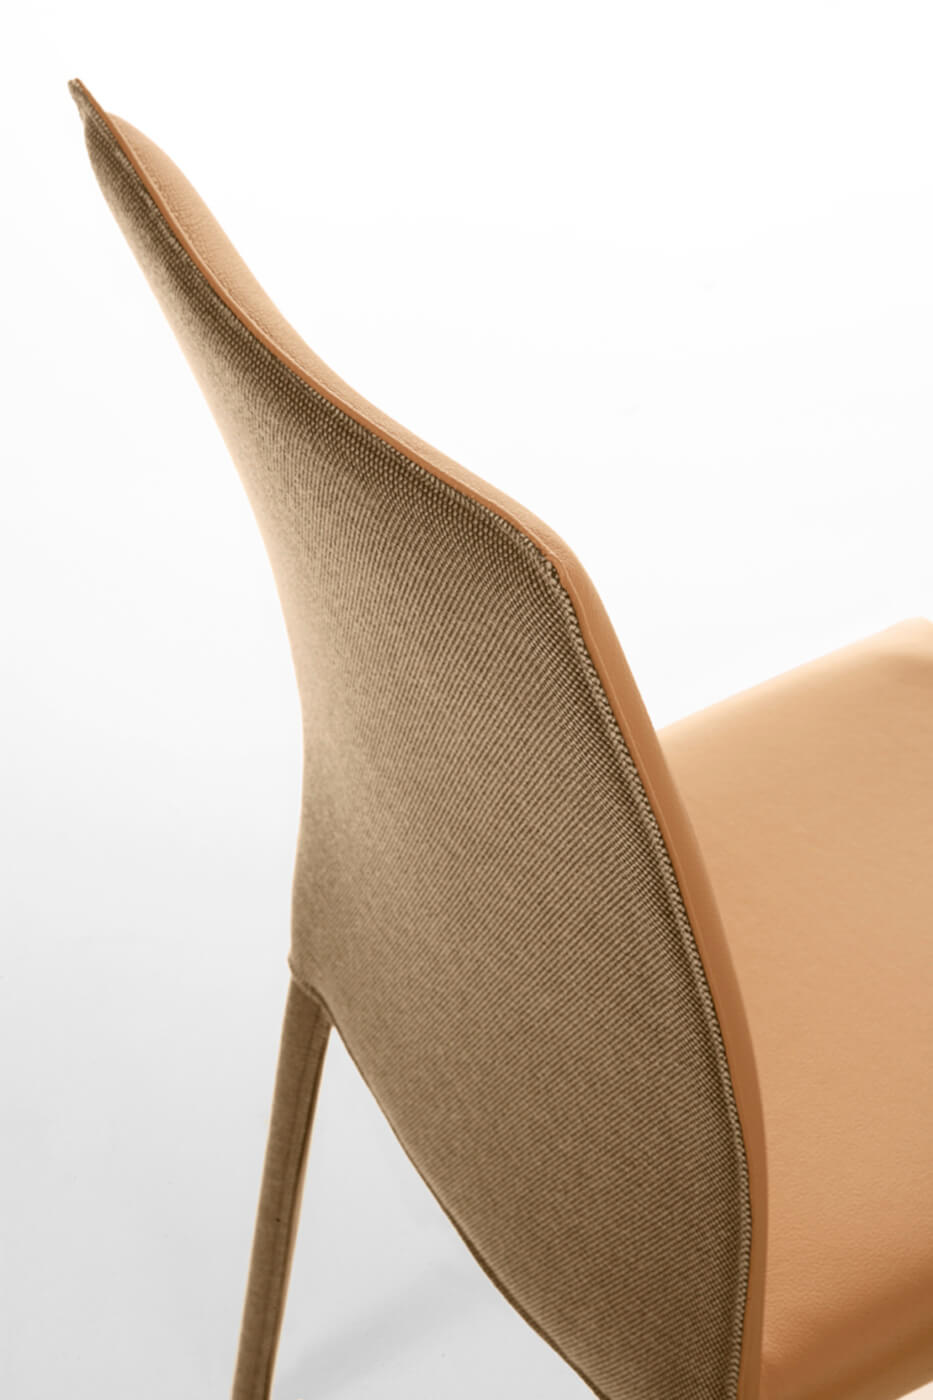 Detail of back Nuvola chair back in orange fabric